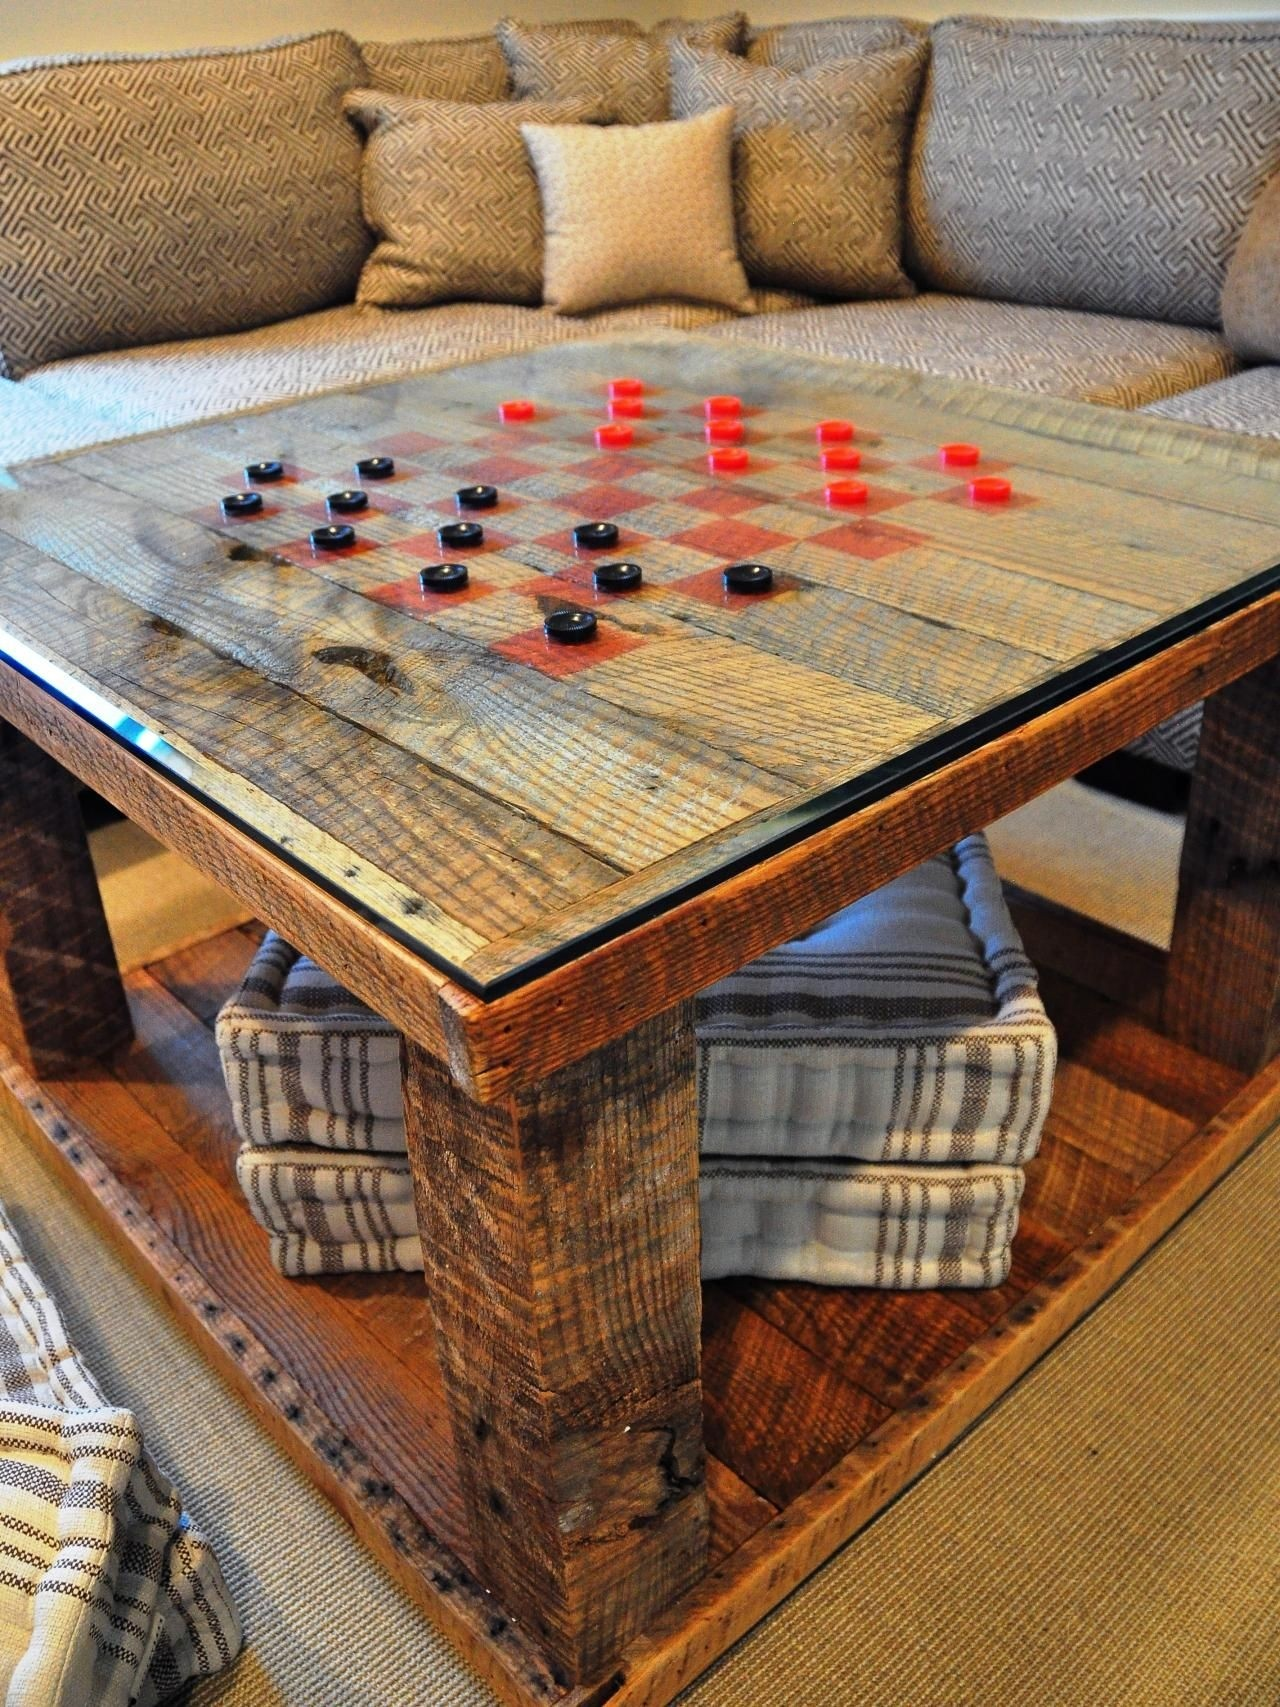 Chess board table top & Chess Coffee Table - Foter